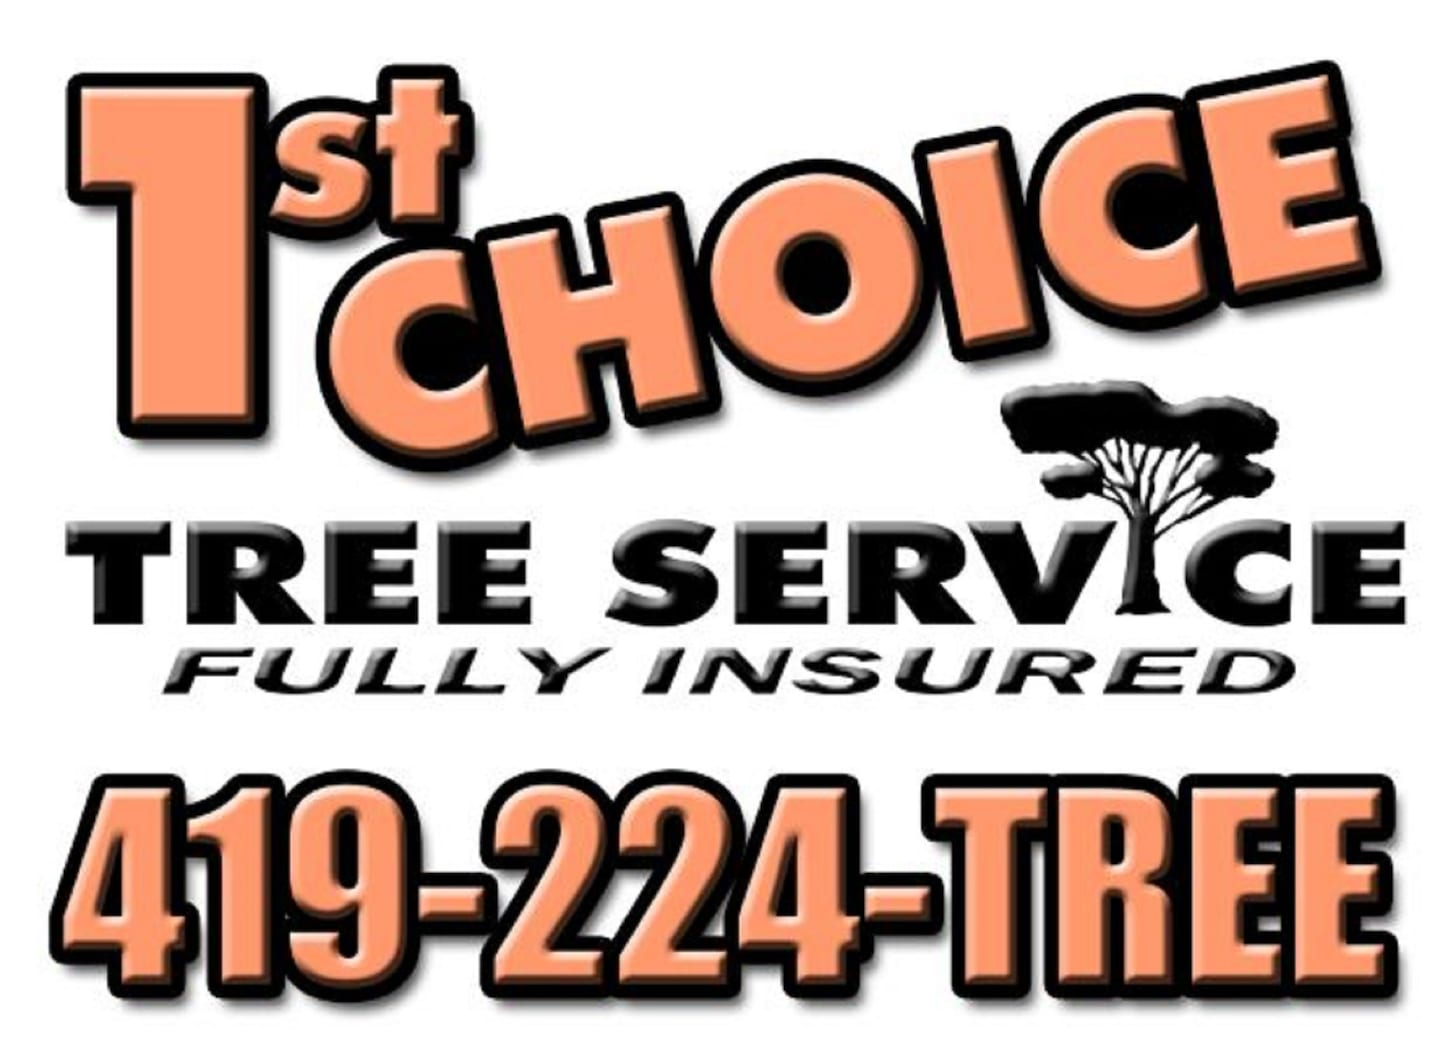 1st Choice Tree Service